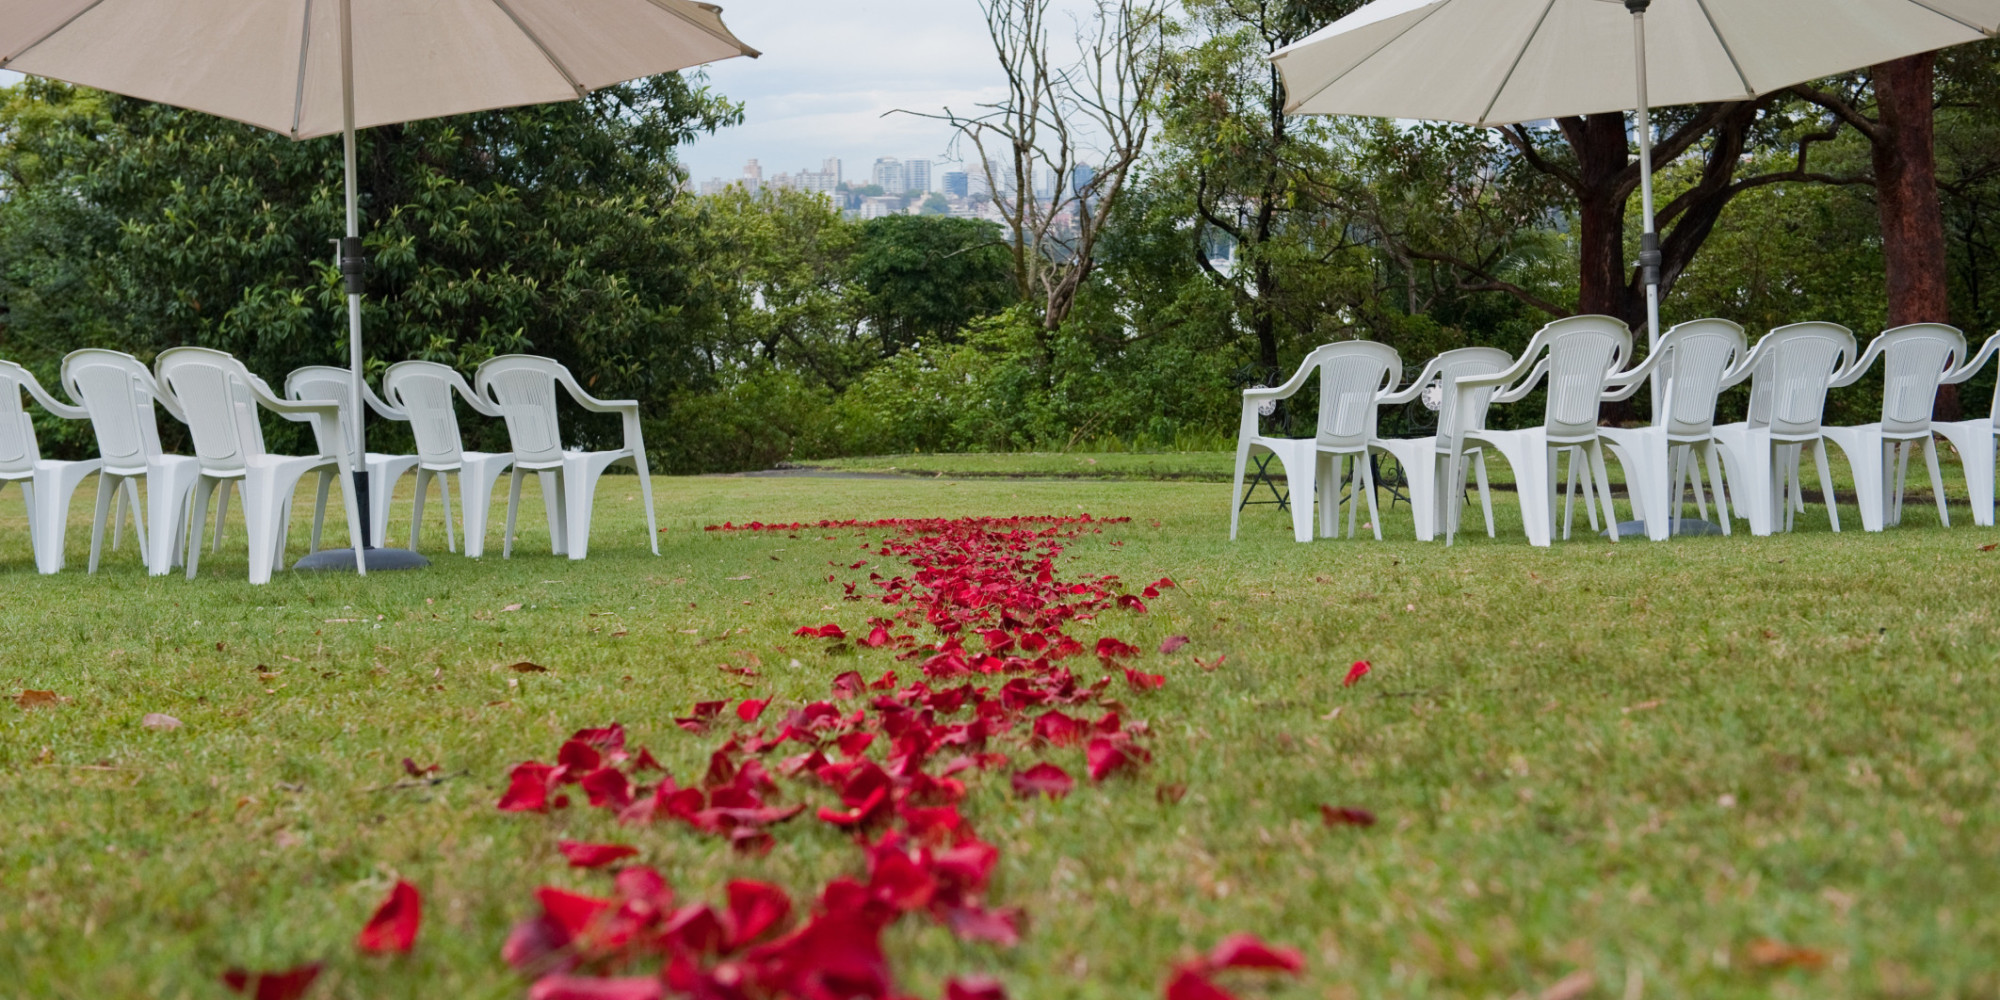 Perfect Backyard Wedding :  Tips for Planning the Perfect Backyard Wedding  The Huffington Post